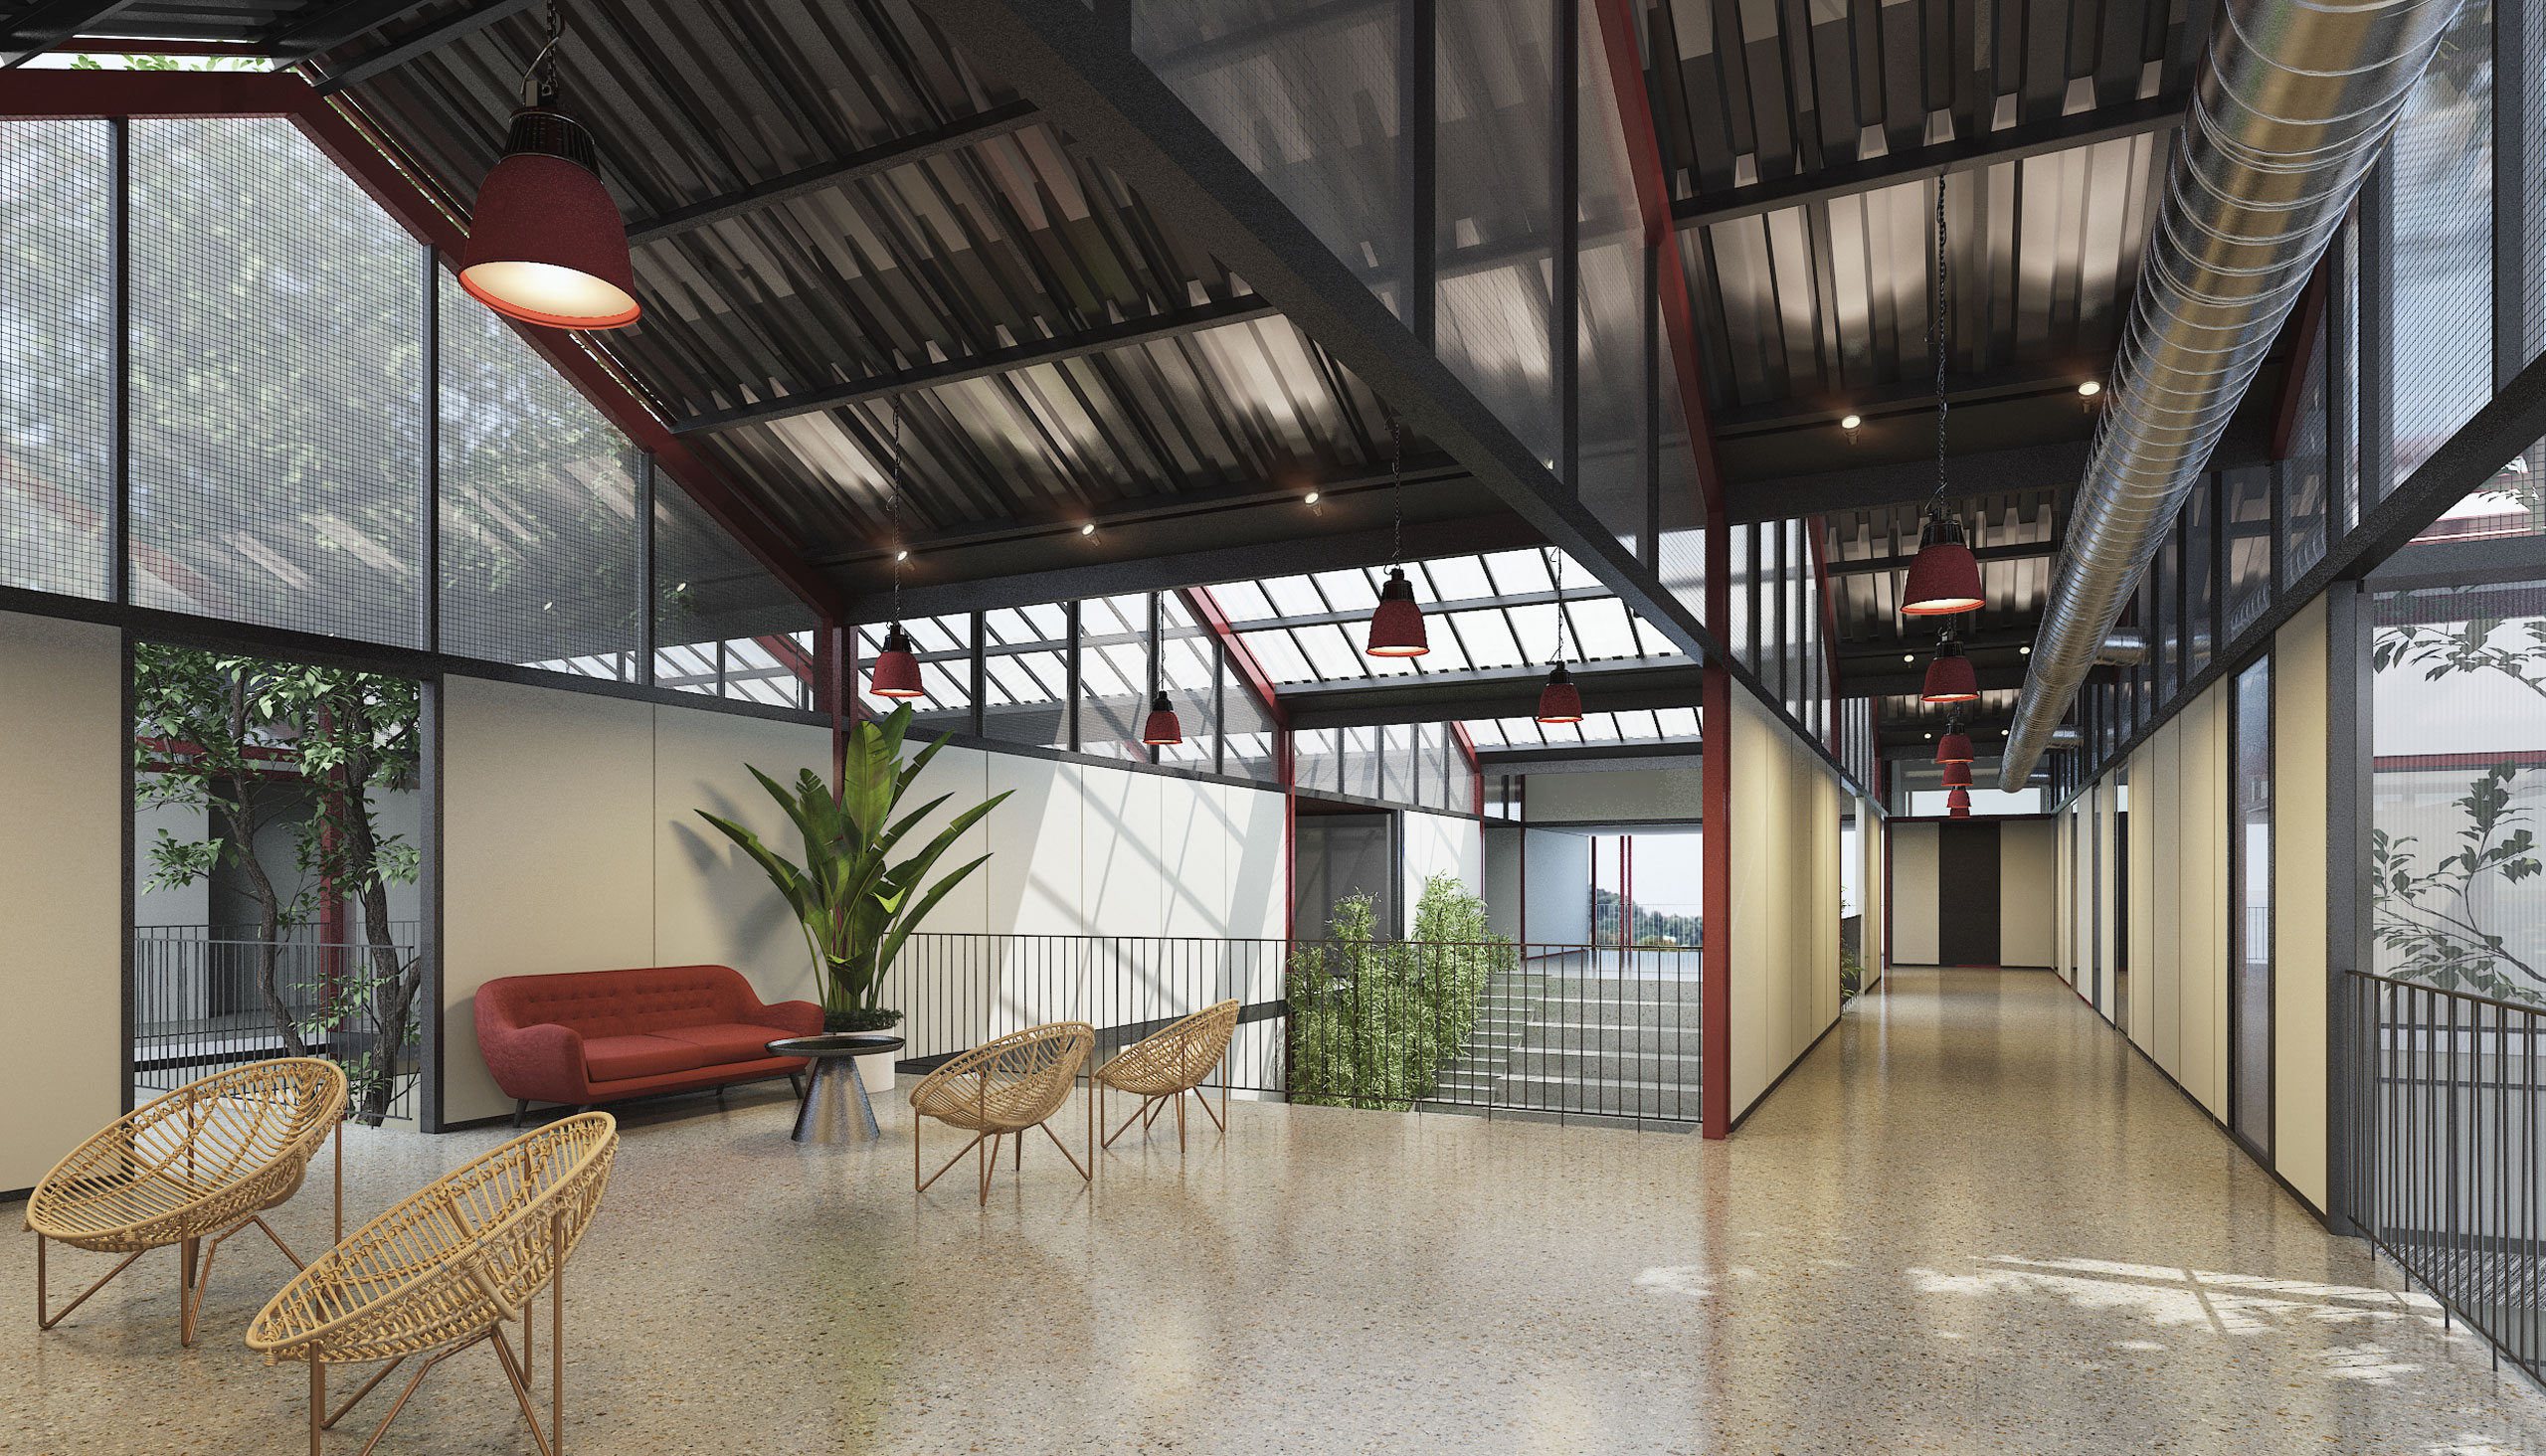 Courtyard under Industrial roof of Administration Building in Latur, India